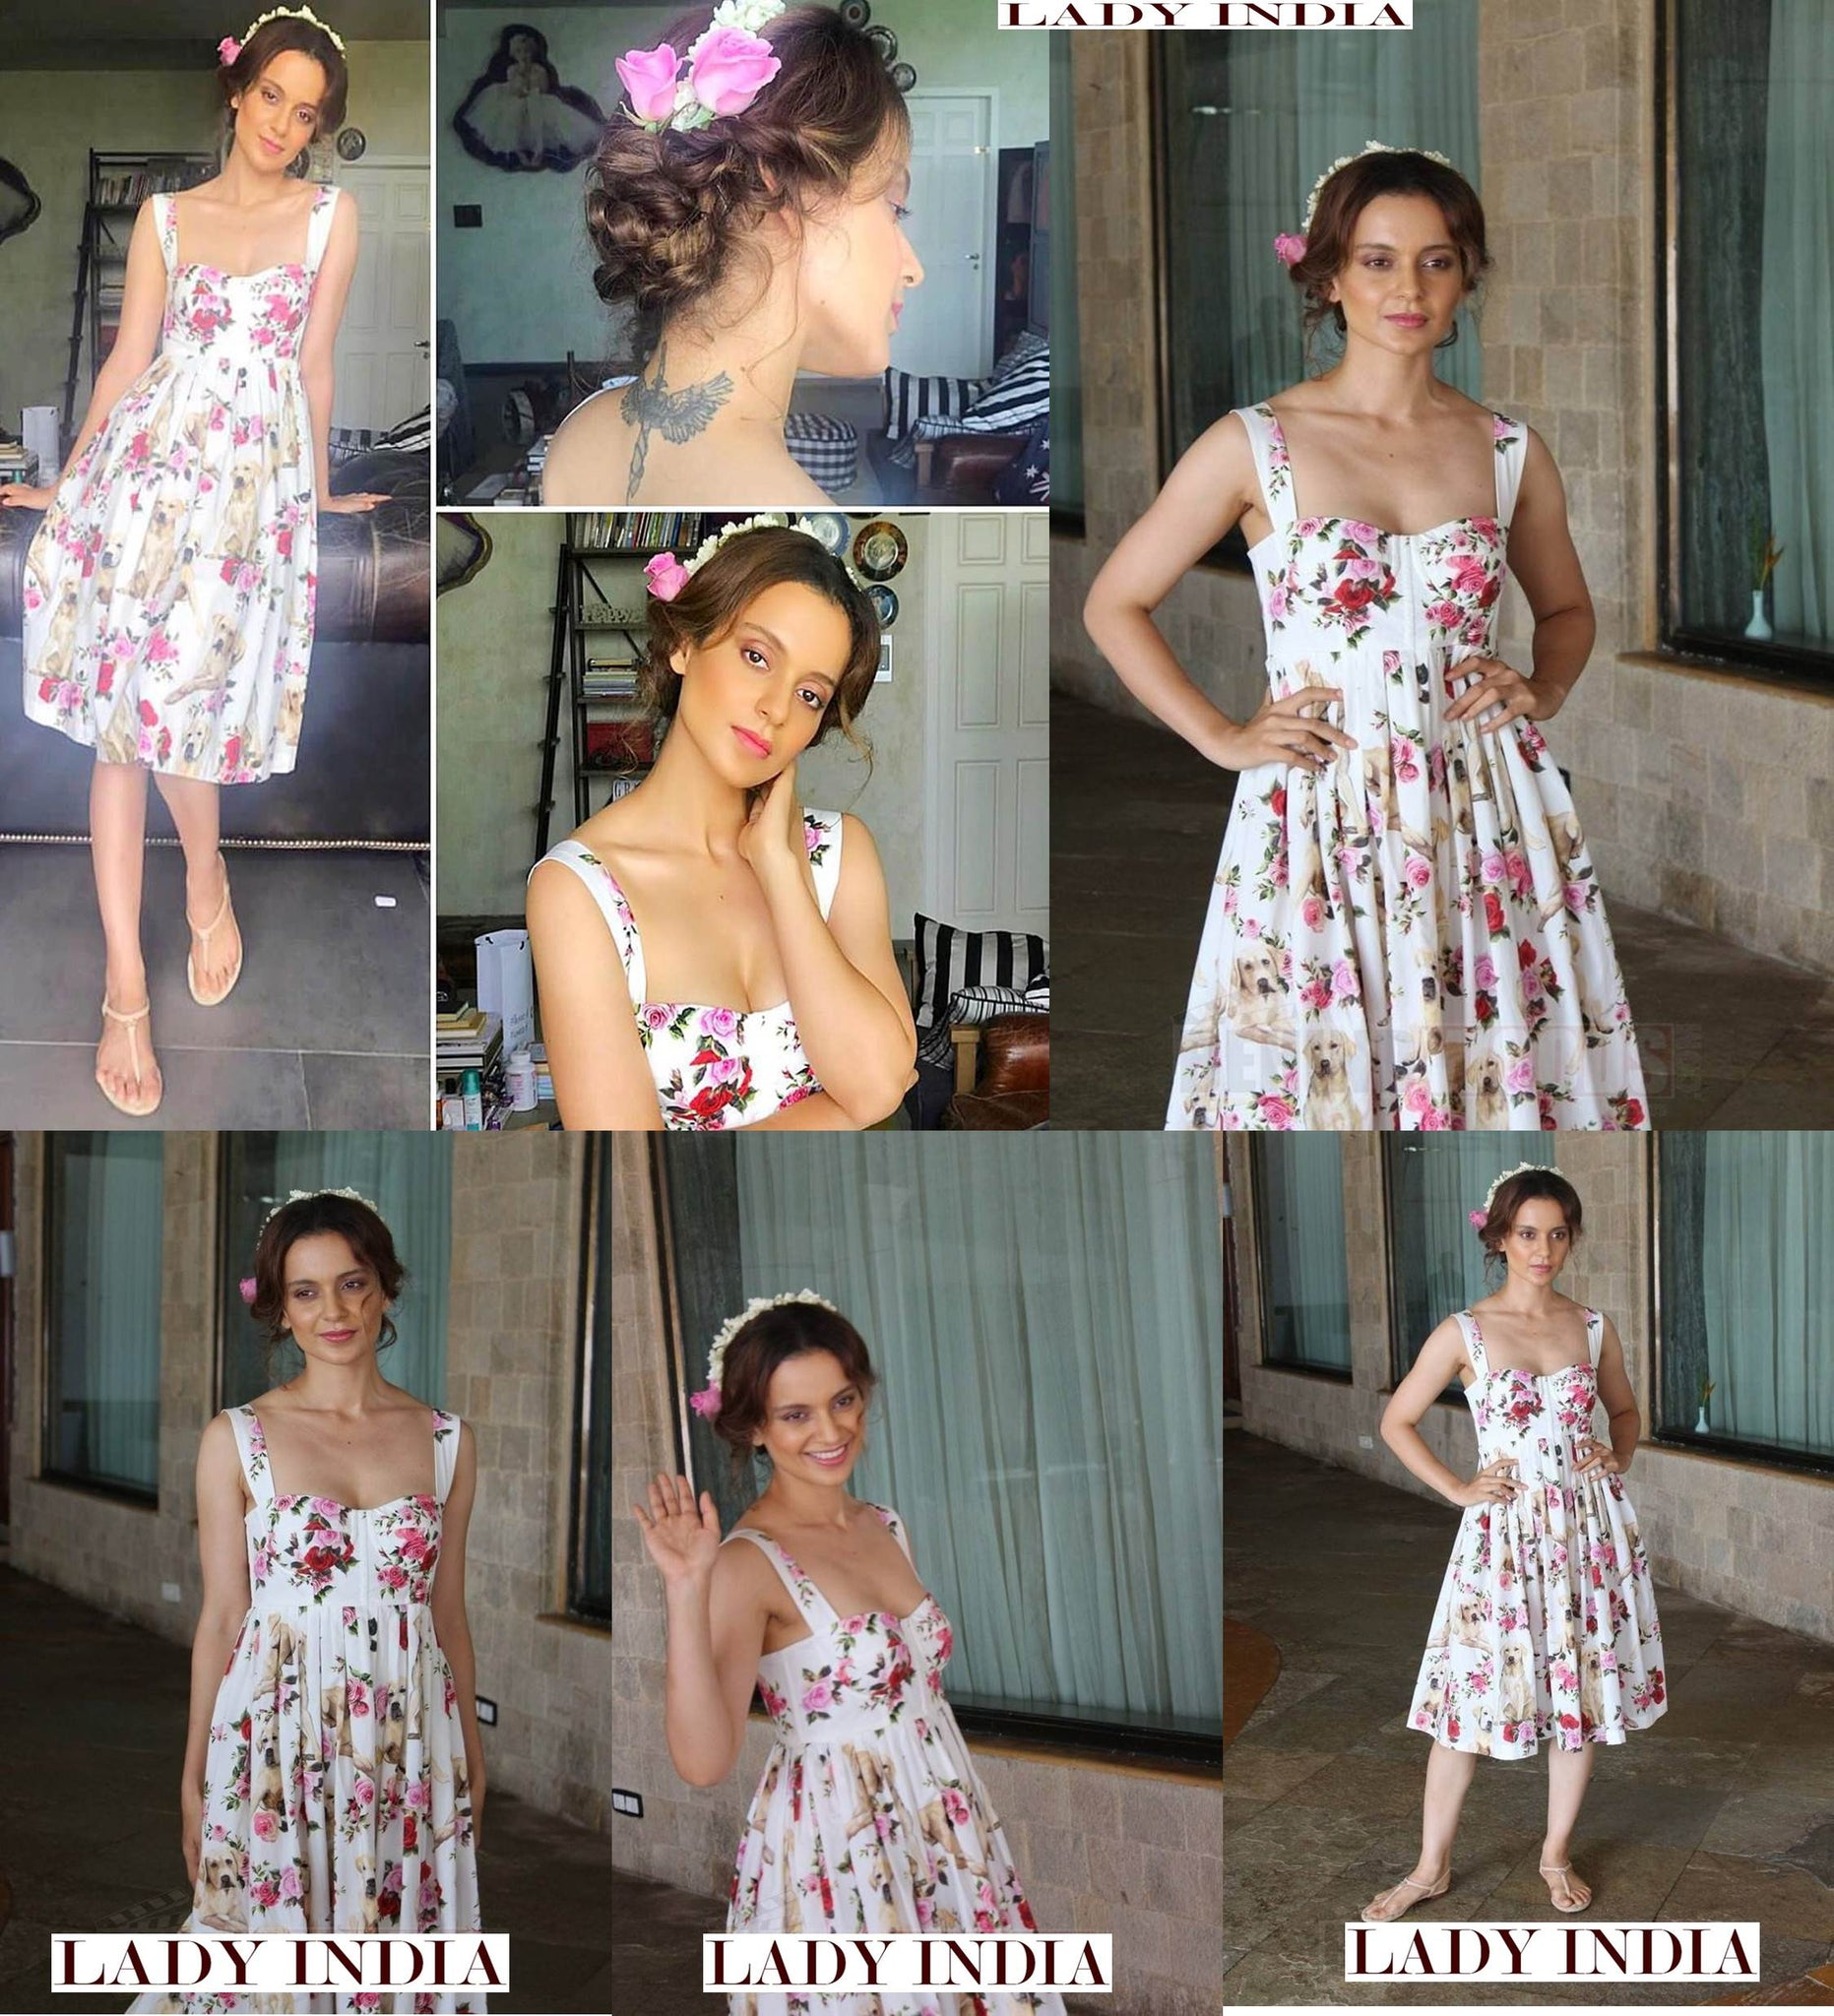 Kangana Ranaut makes a bold statement in this spicy, colour-blocked ensemble